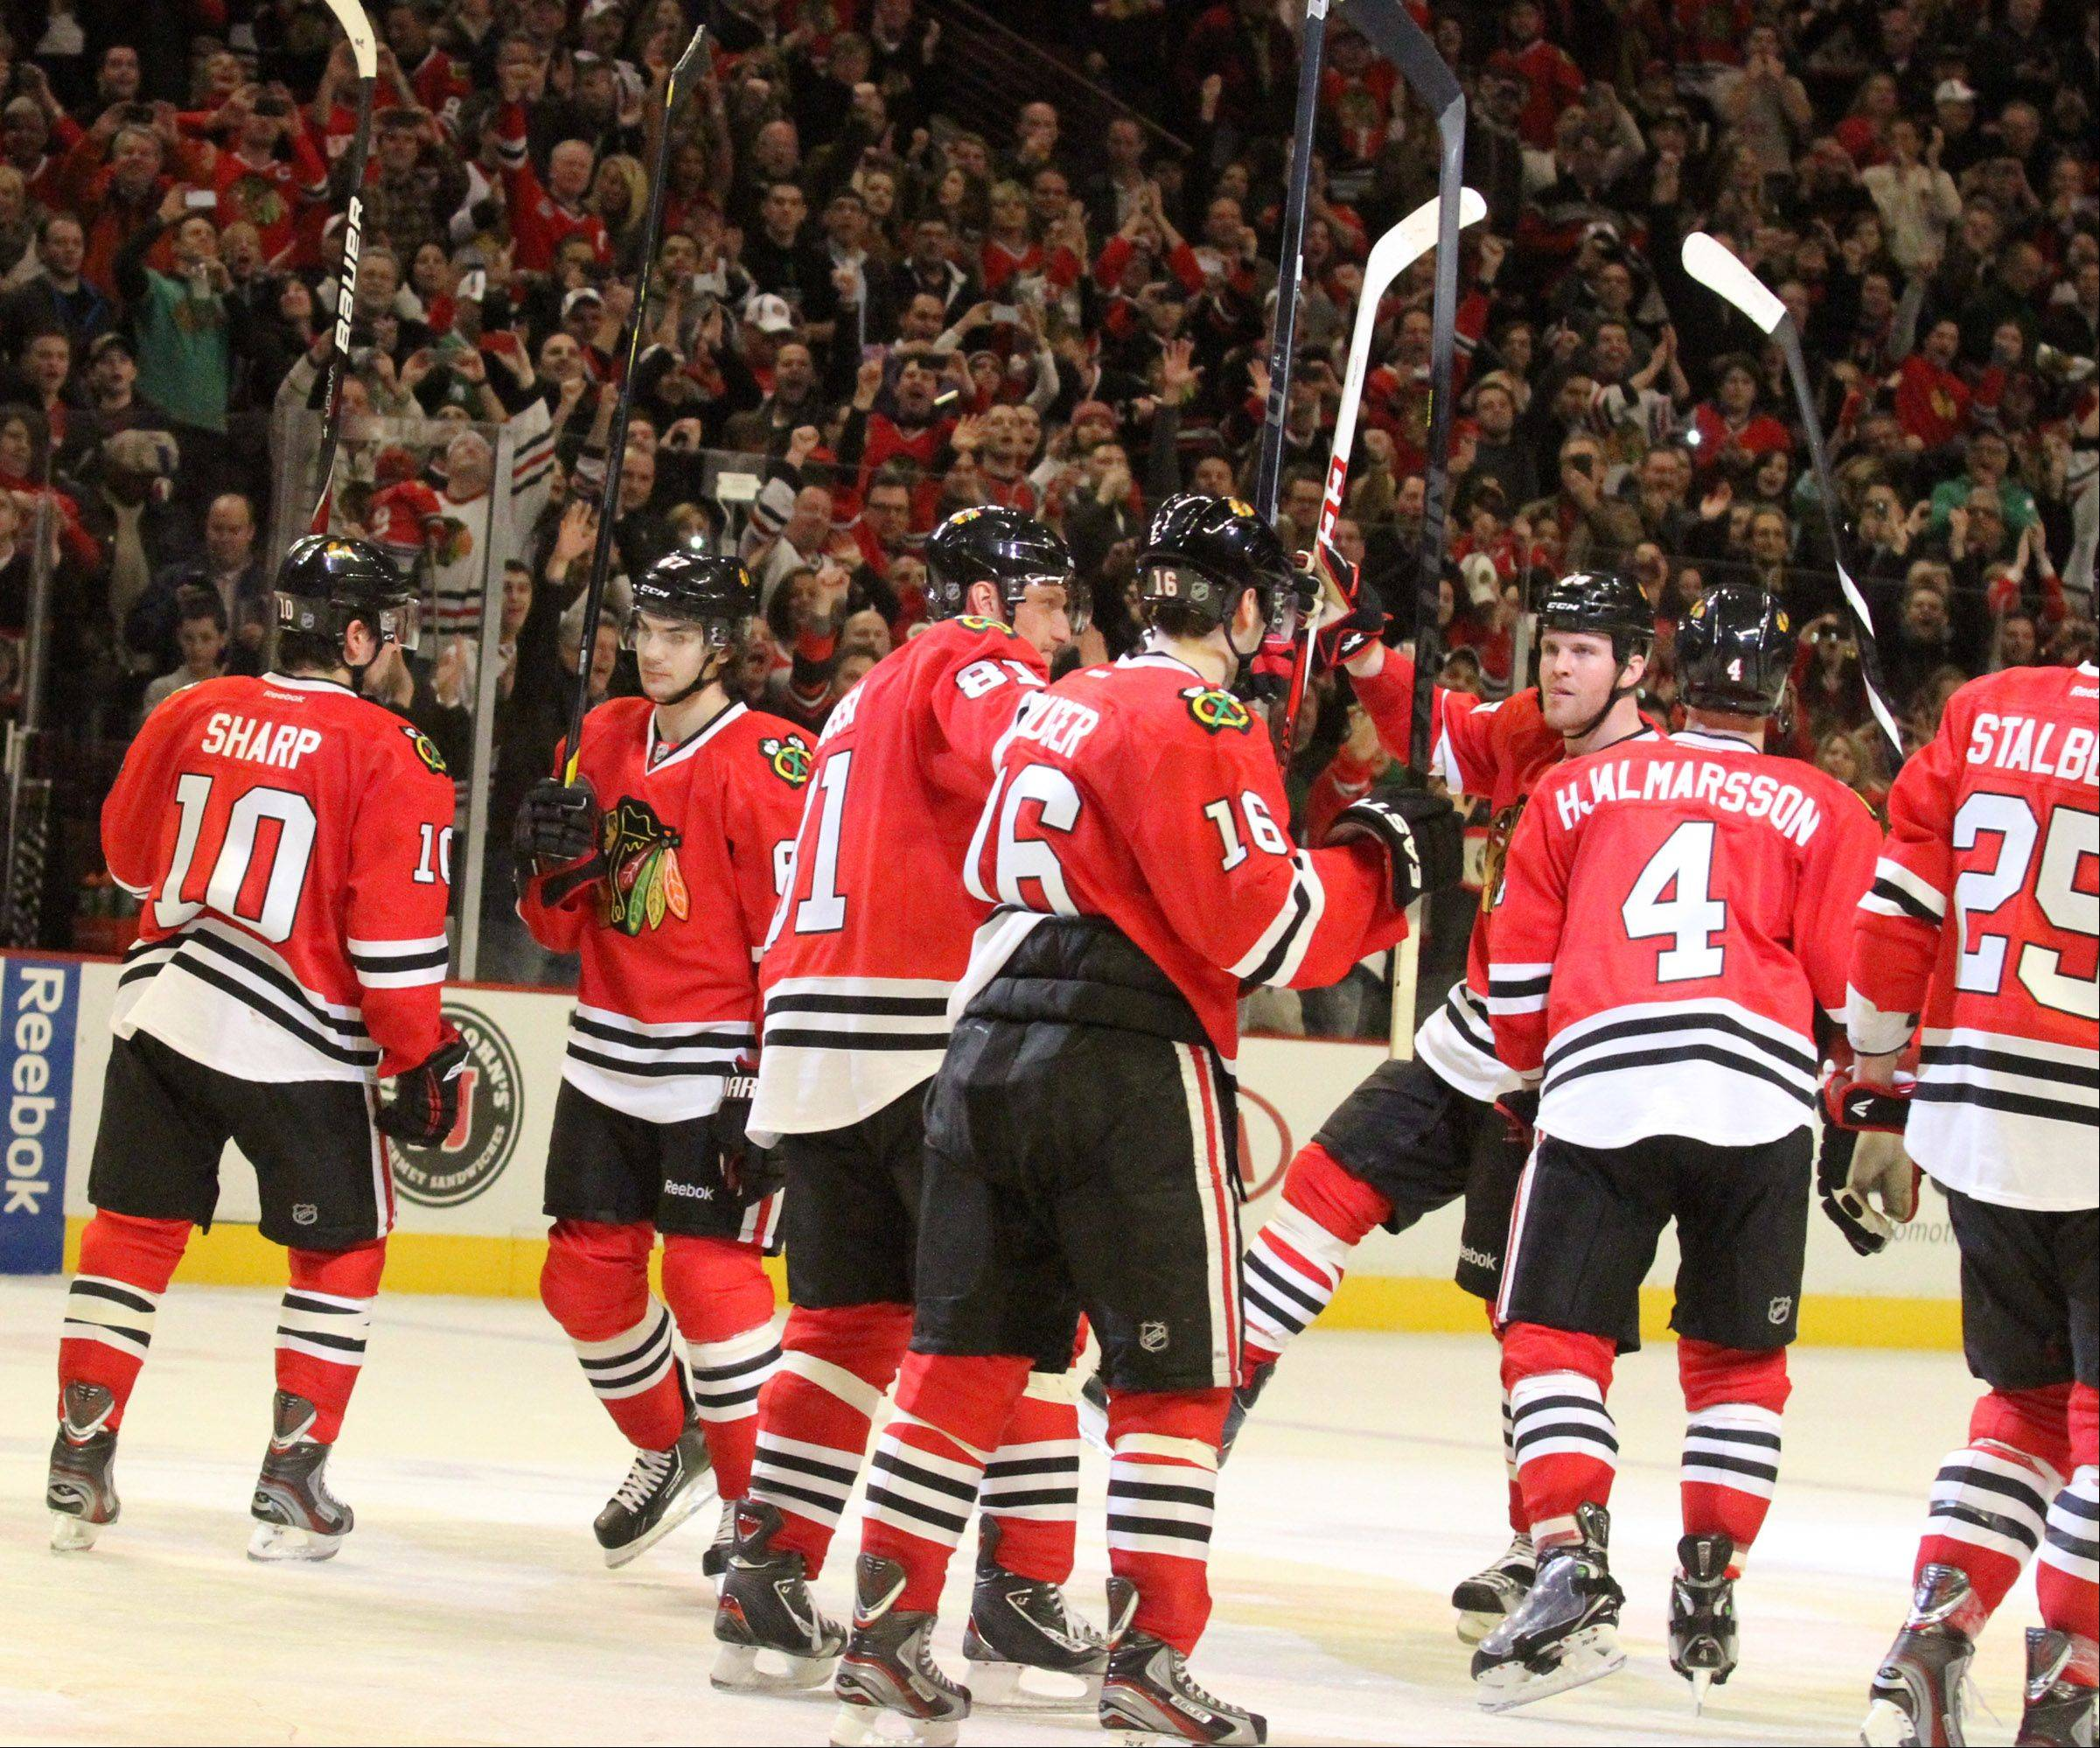 The Blackhawks raise their sticks after winning 2-1 against the San Jose Sharks at the United Center on Friday.